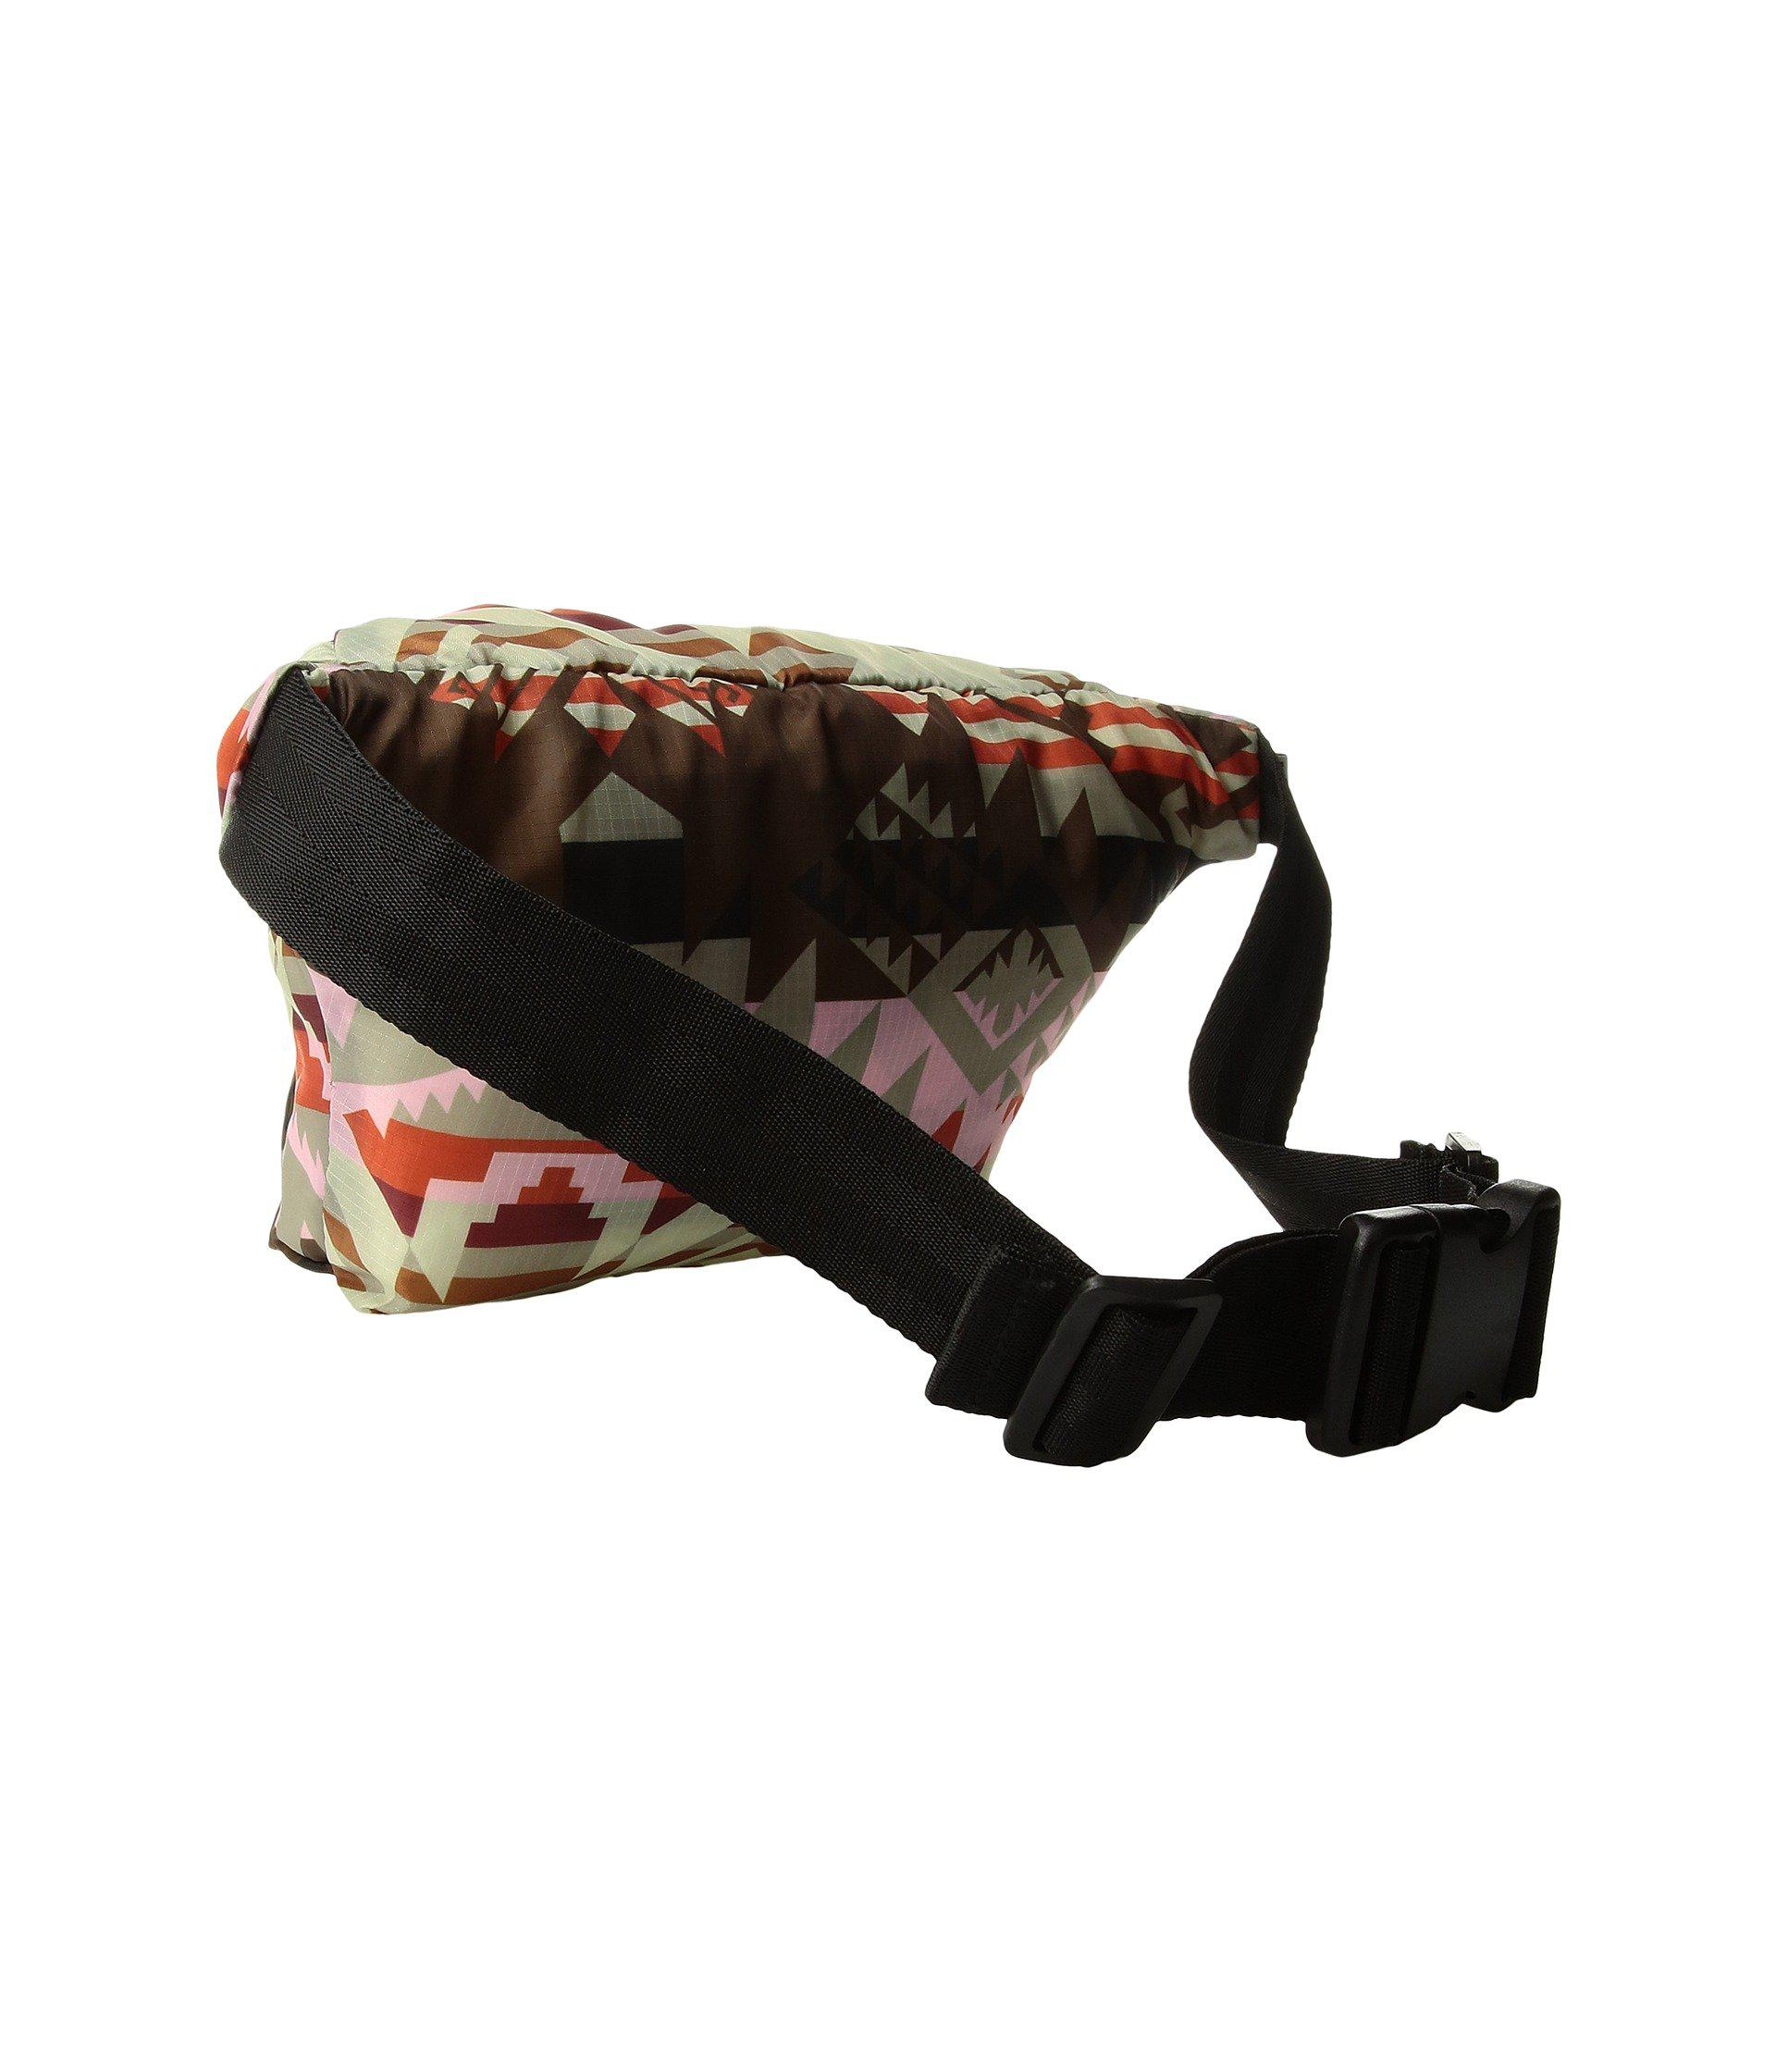 Lyst - Poler Journey West Stuffable Fanny Pack 2ef9e2d7fd47c